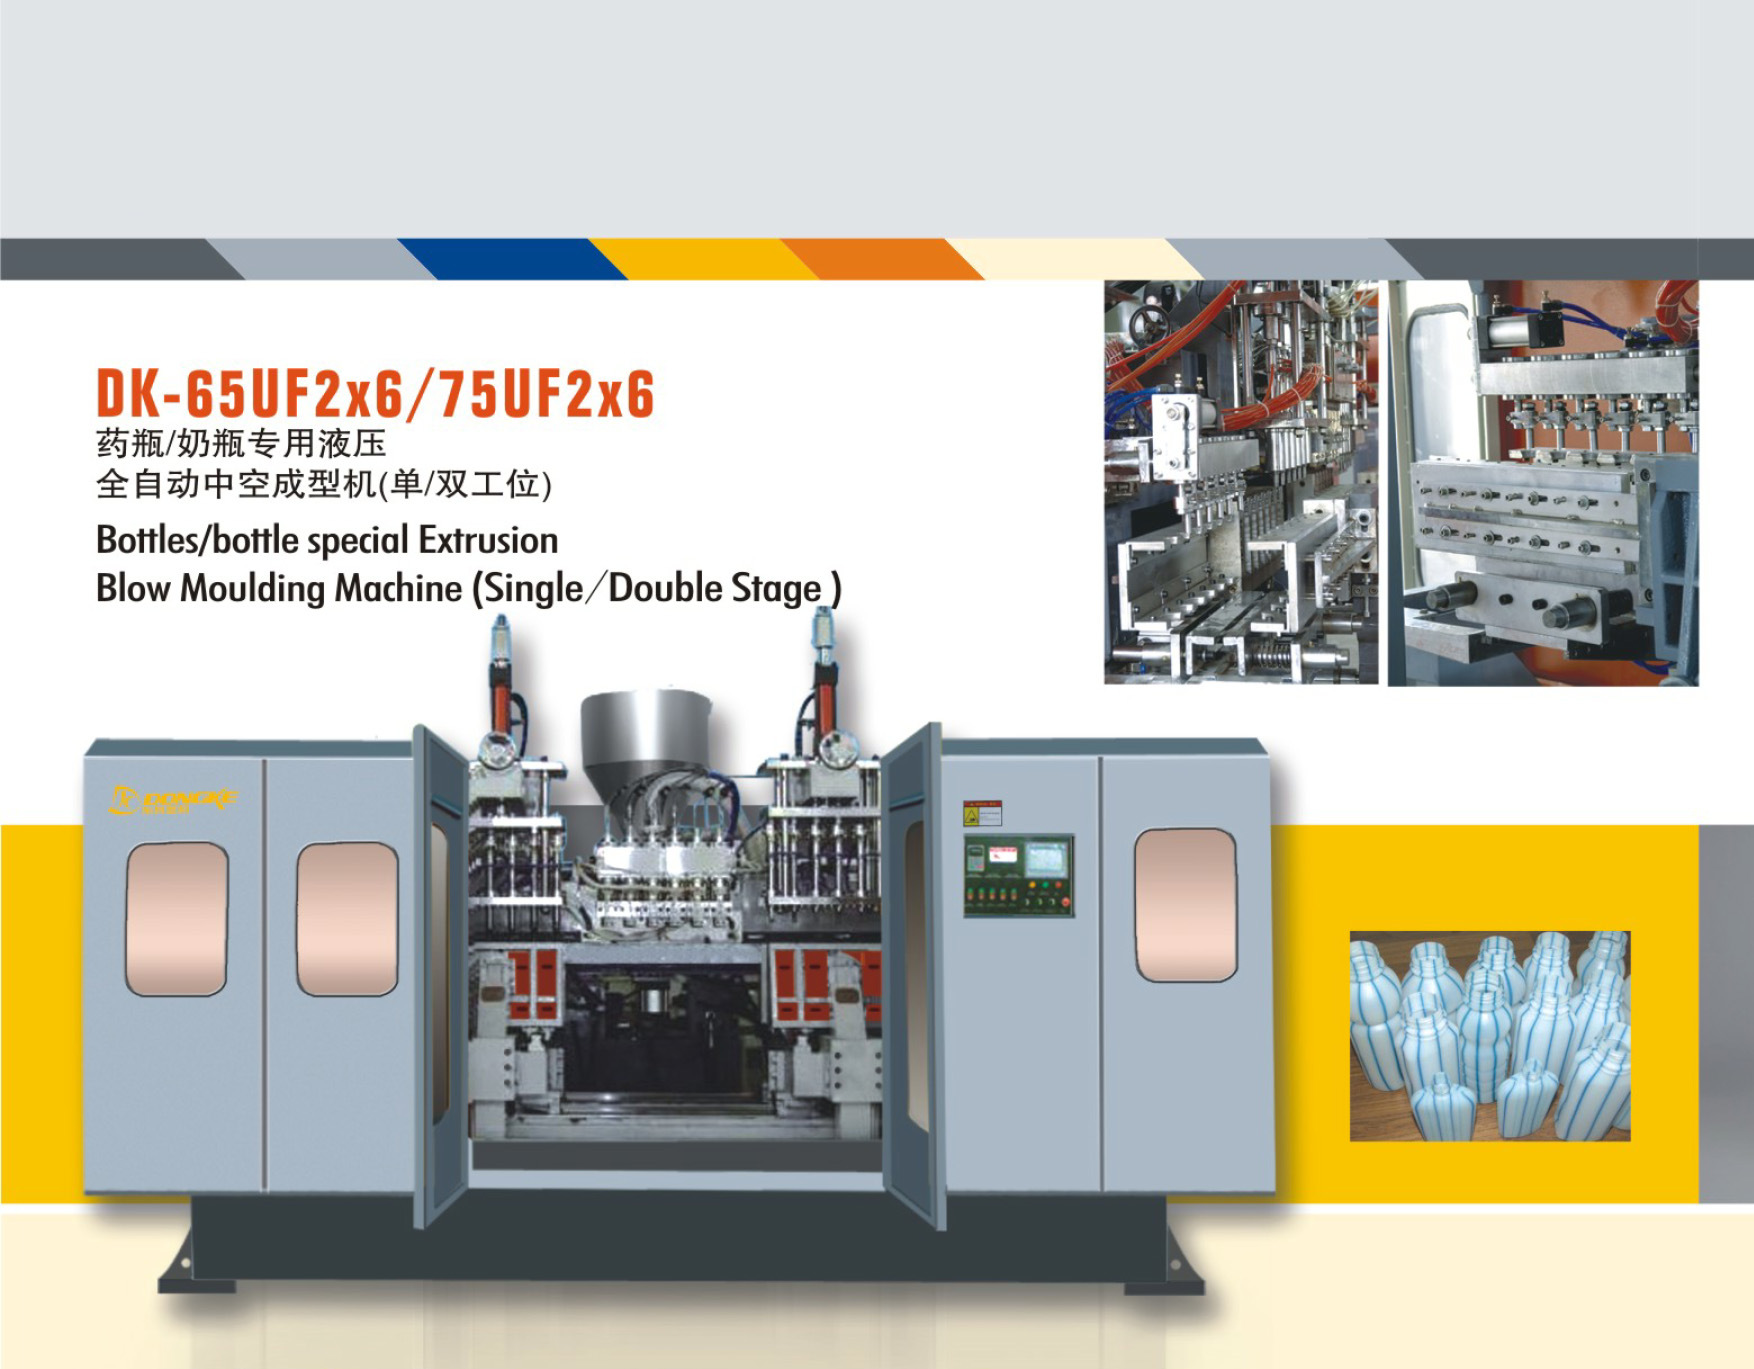 Pet-Bottles-Bottle-Special-Extrusion-Blow-Moulding-Machine-Single-Double-Stage-